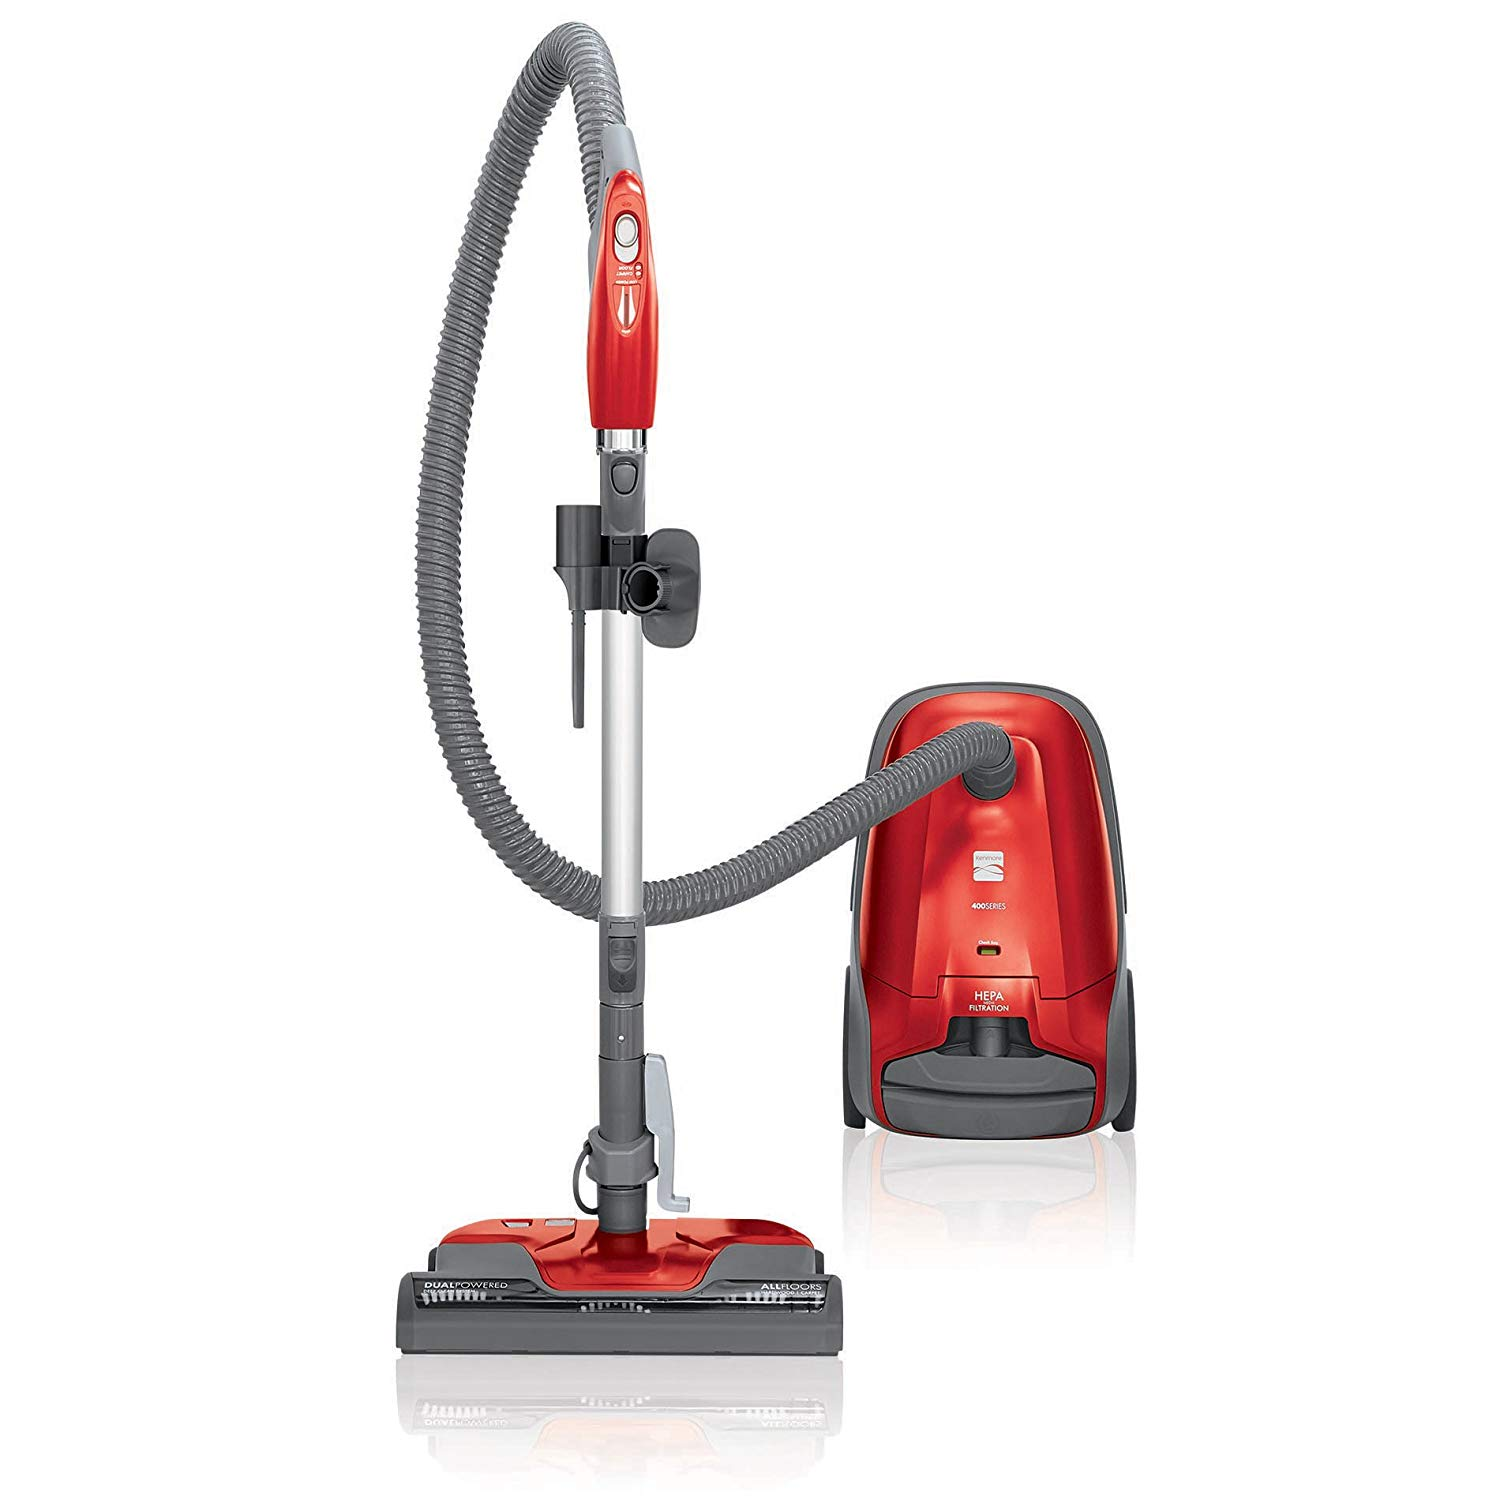 Kenmore 81414 400 series bagged canister vacuum cleaner in red